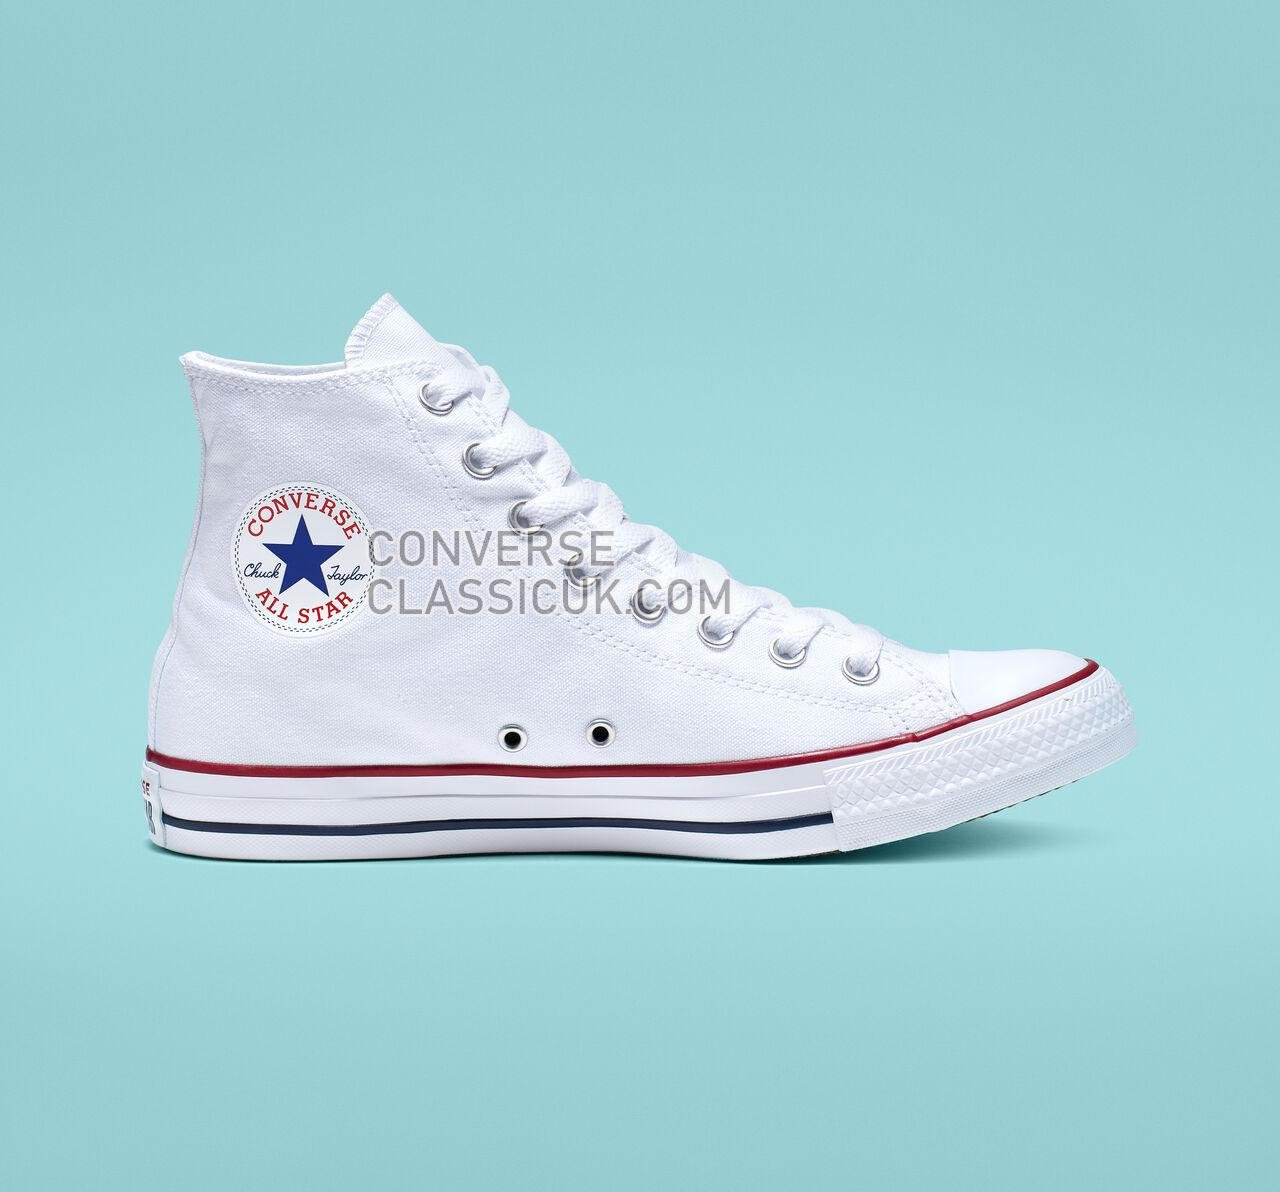 Converse Chuck Taylor All Star High Top Mens Womens Unisex M7650 Optical White Shoes